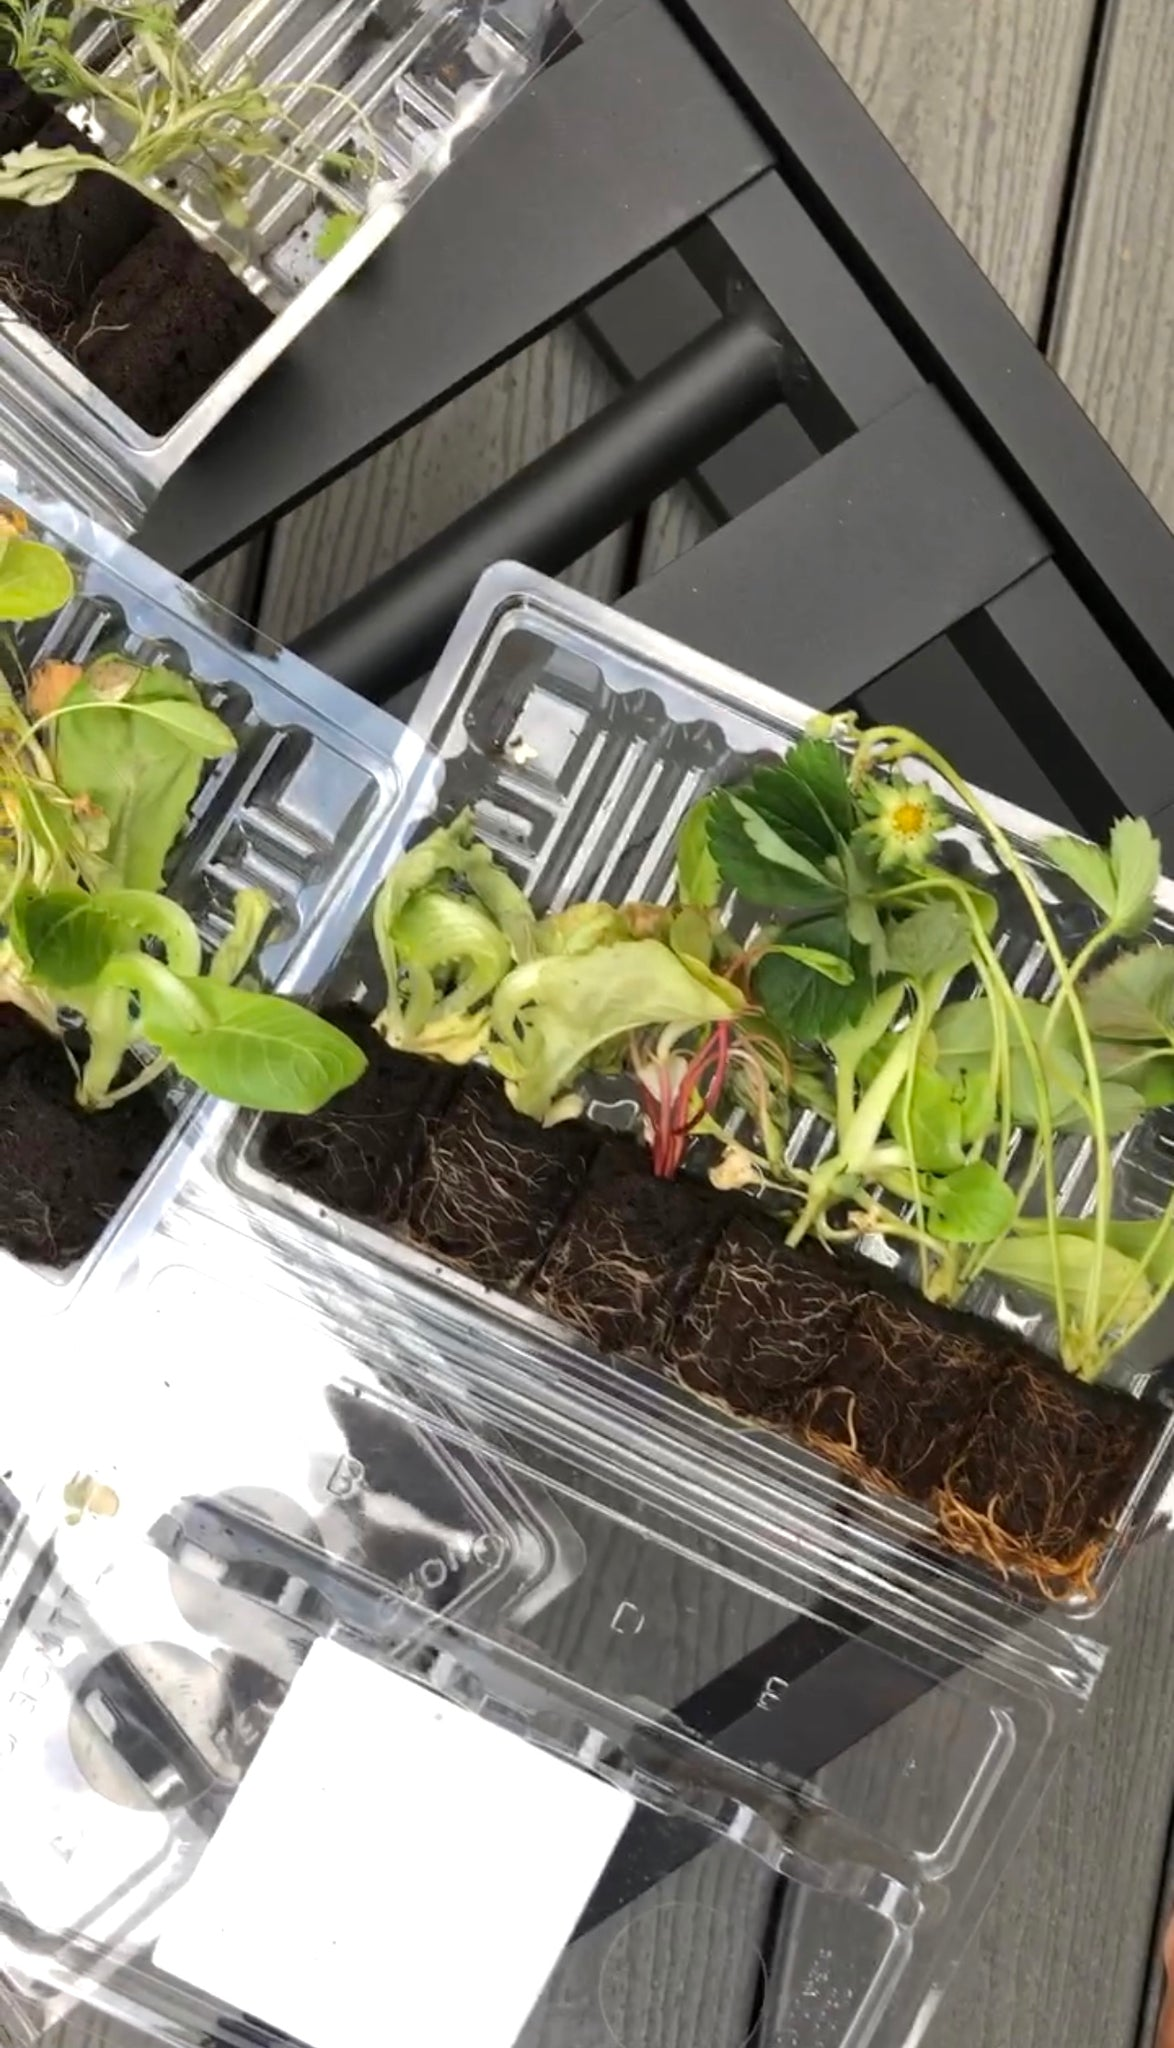 Lettuce Grow Seedlings - Grow Your Own Food - Garden Plants - Pretty Collected